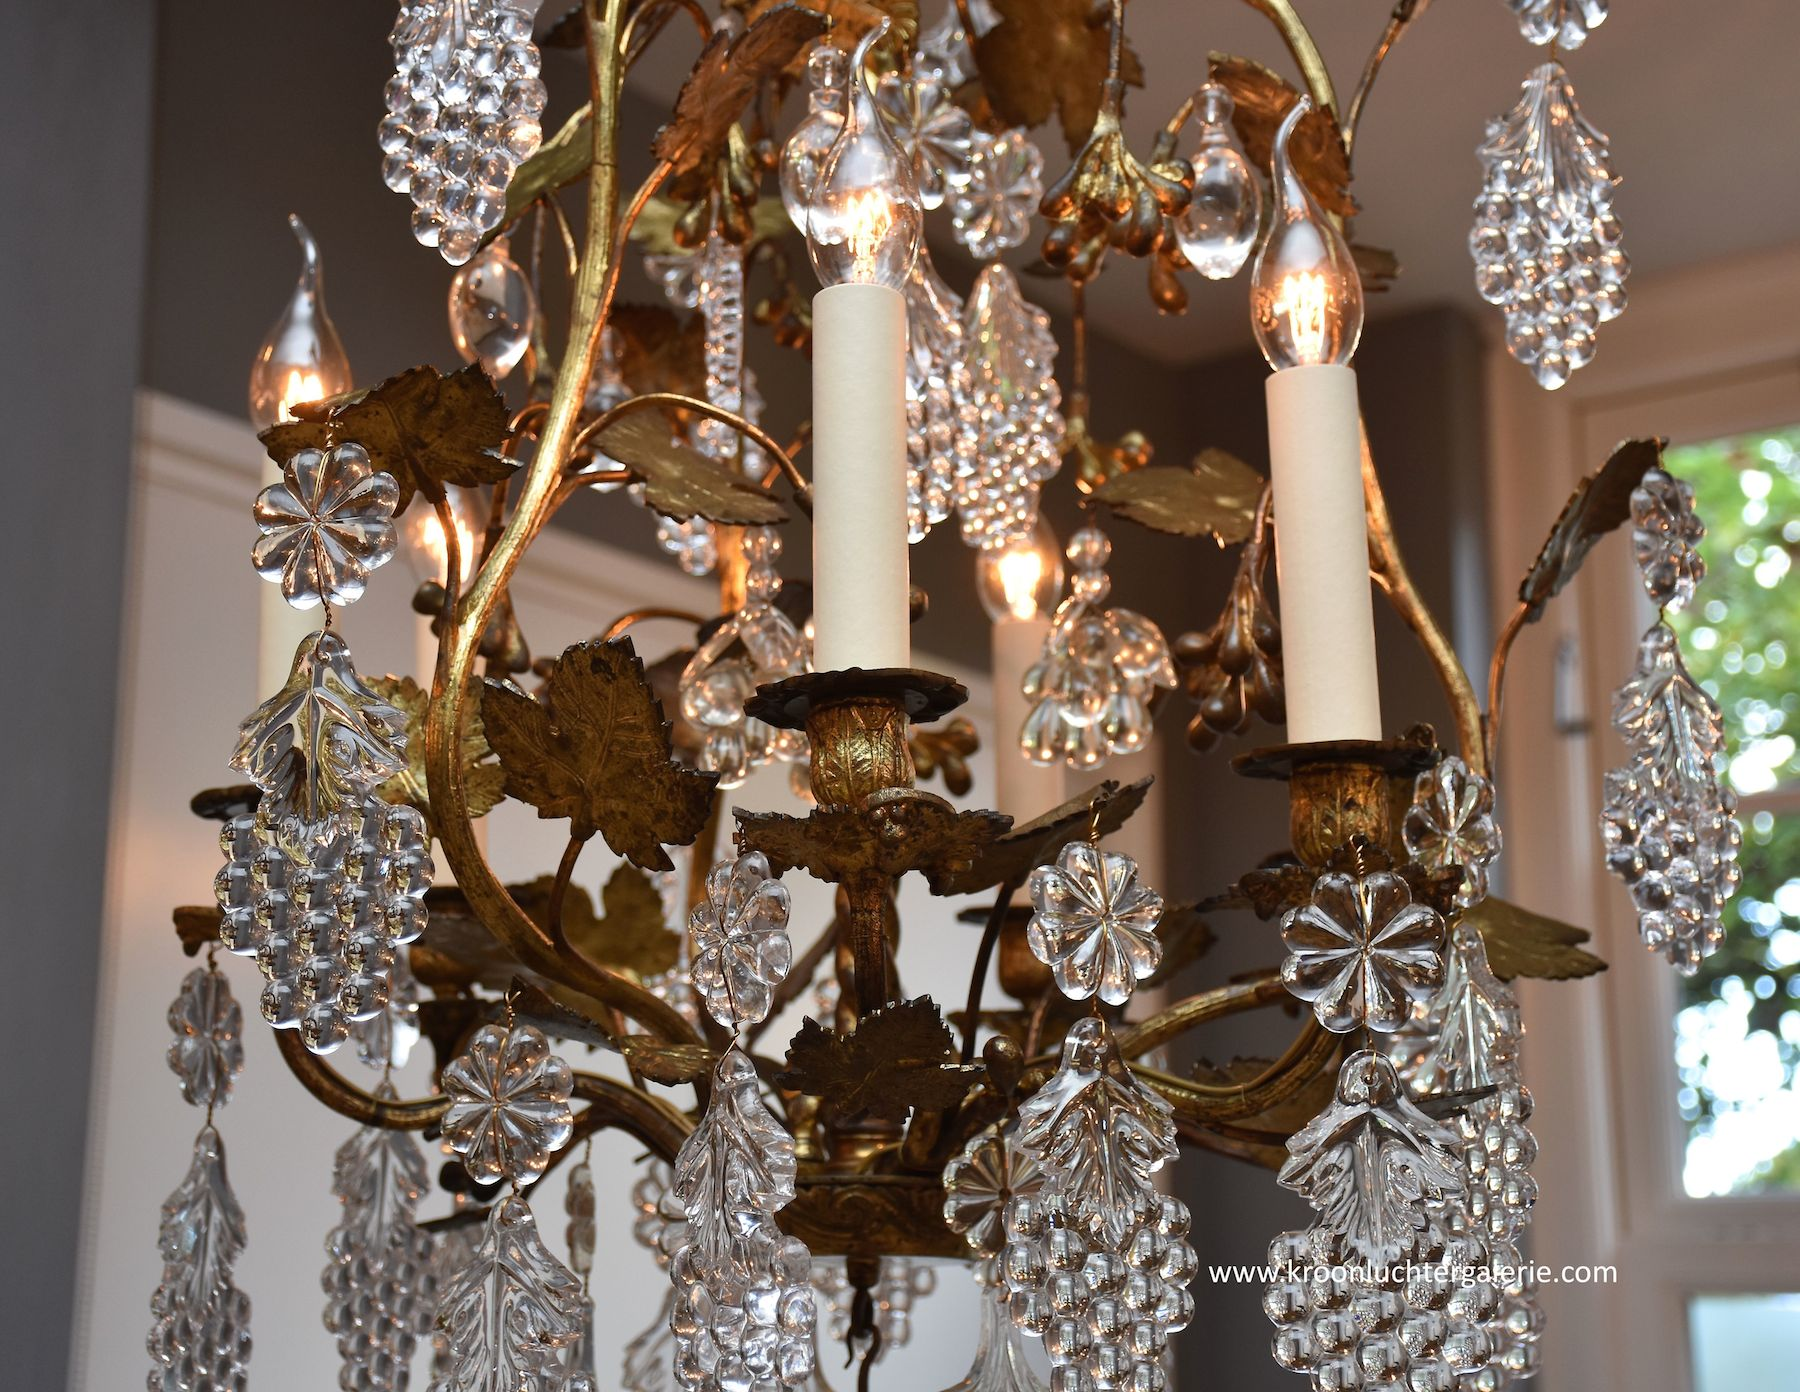 Gilt bronze French chandelier with 6 light